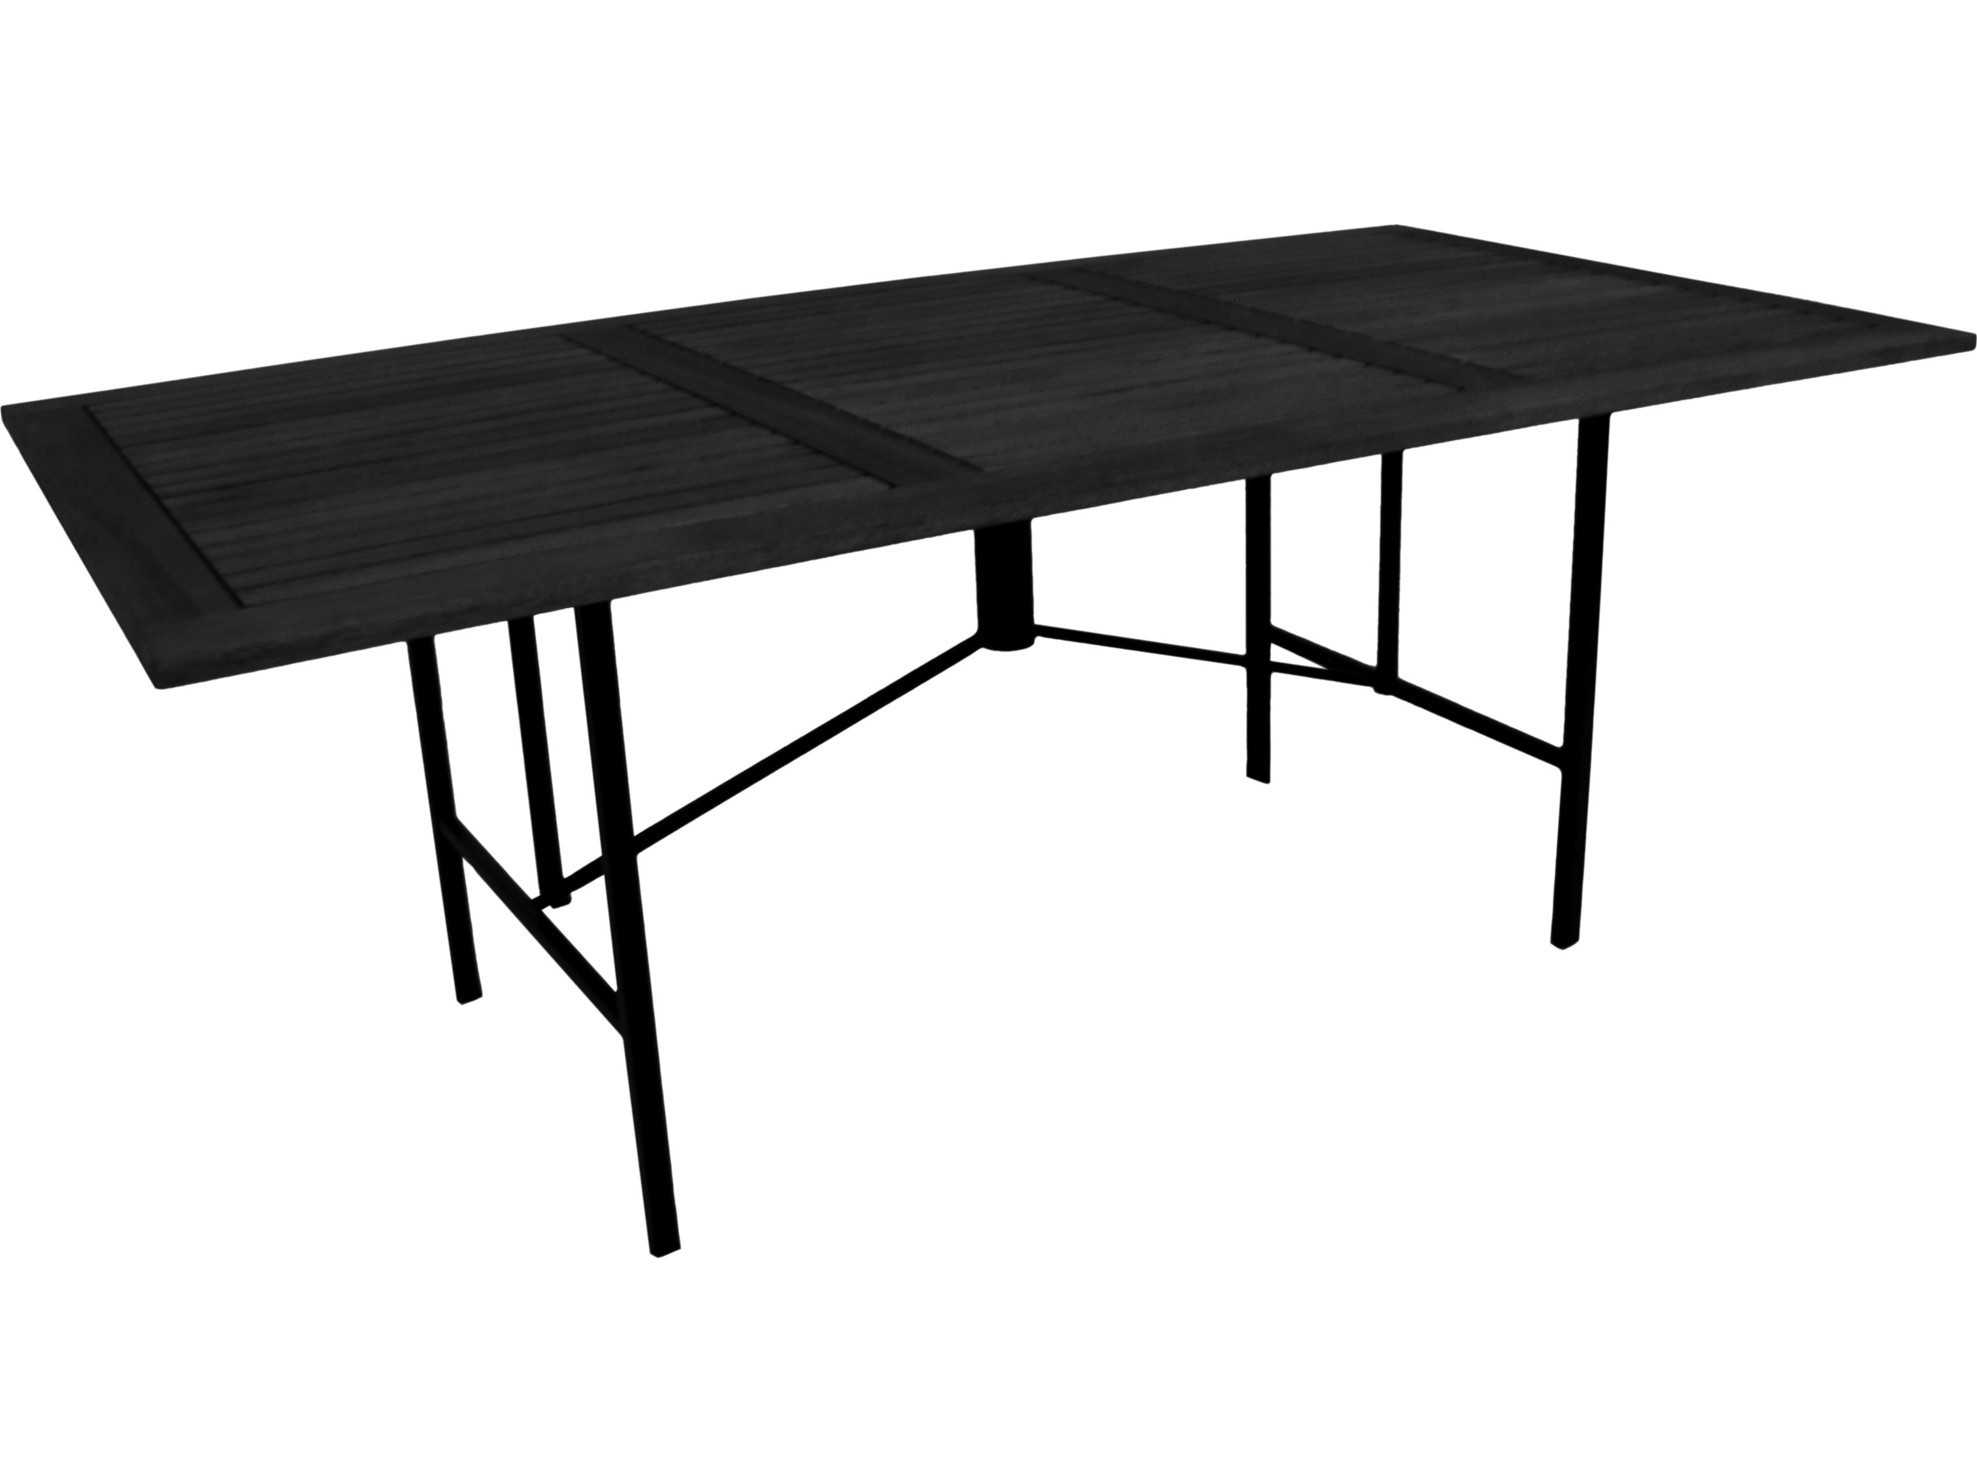 meadowcraft meridian wrought iron 72 x 38 rectangular wood dining table 4557200 01. Black Bedroom Furniture Sets. Home Design Ideas